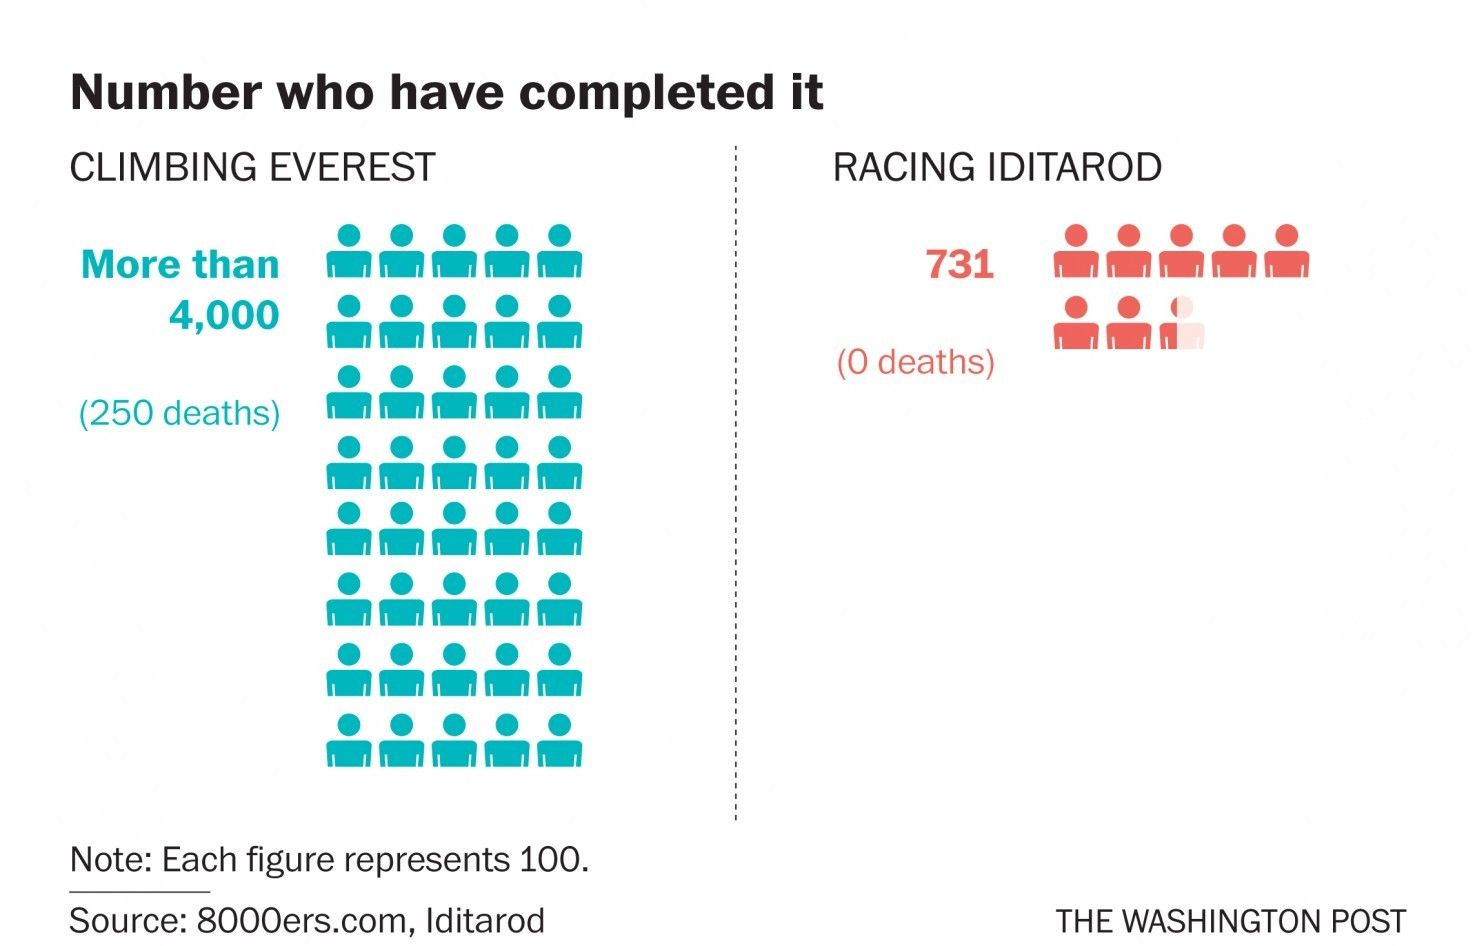 Iditarod vs. Everest: Which is tougher? - The Washington Post